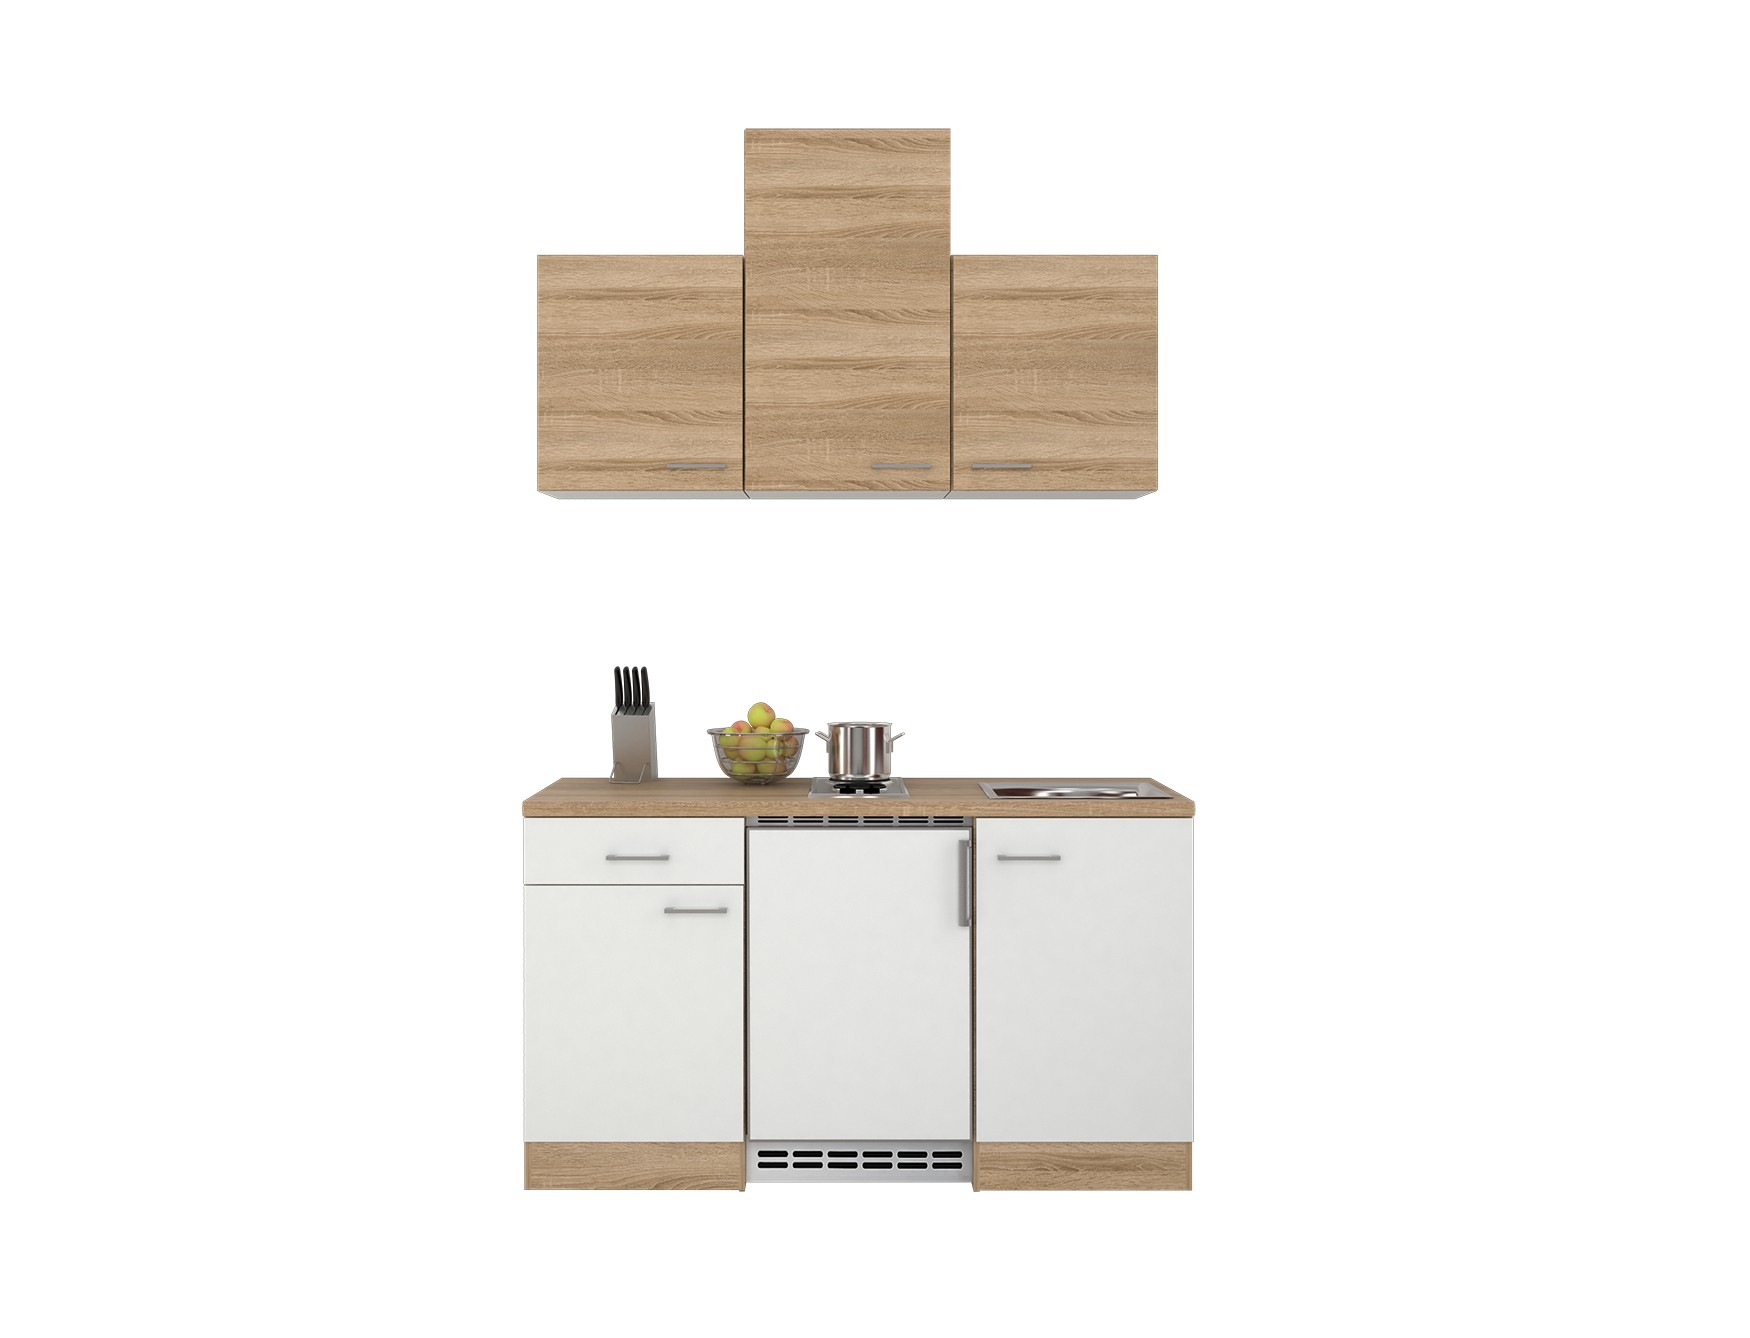 singlek che rom b rok che minik che mit k hlschrank und kochfeld 150 cm weiss ebay. Black Bedroom Furniture Sets. Home Design Ideas